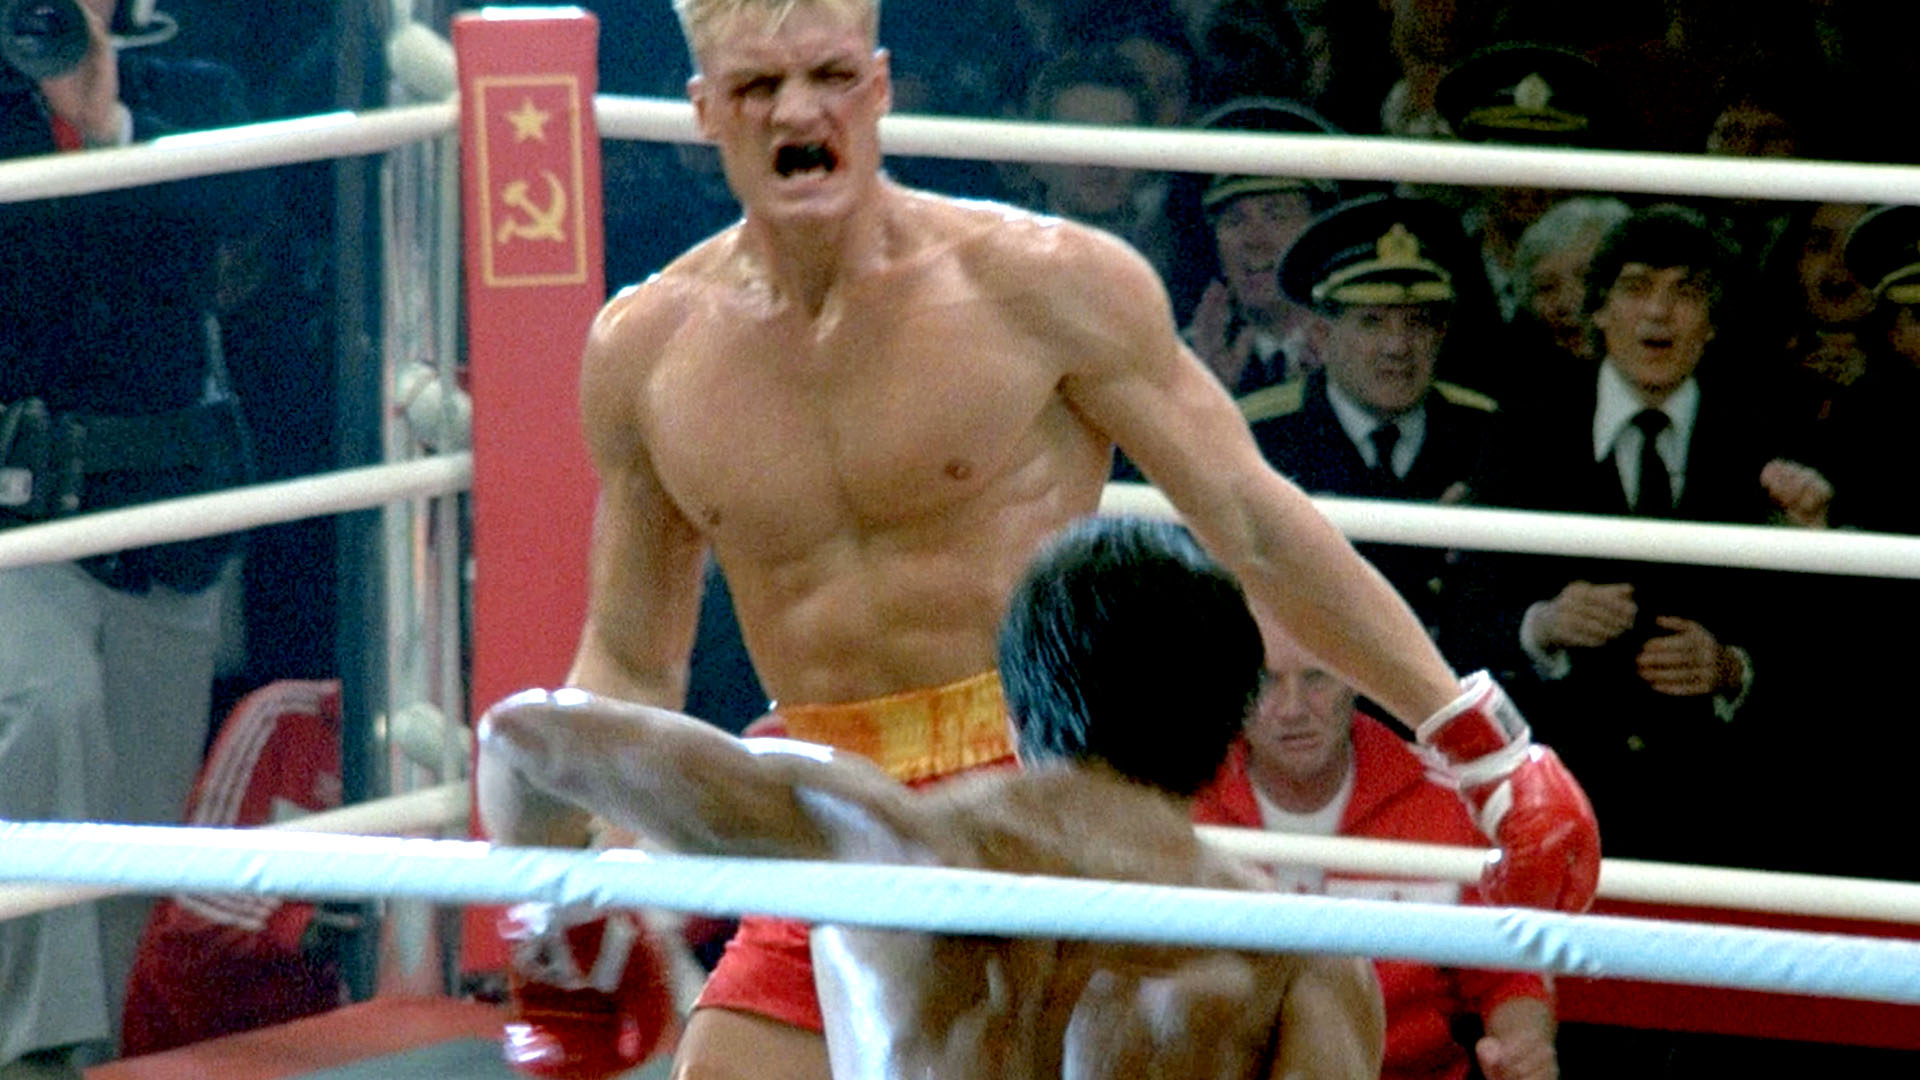 DOLPH LUNDGREN - Page 42 38280744492_09a21f7030_o